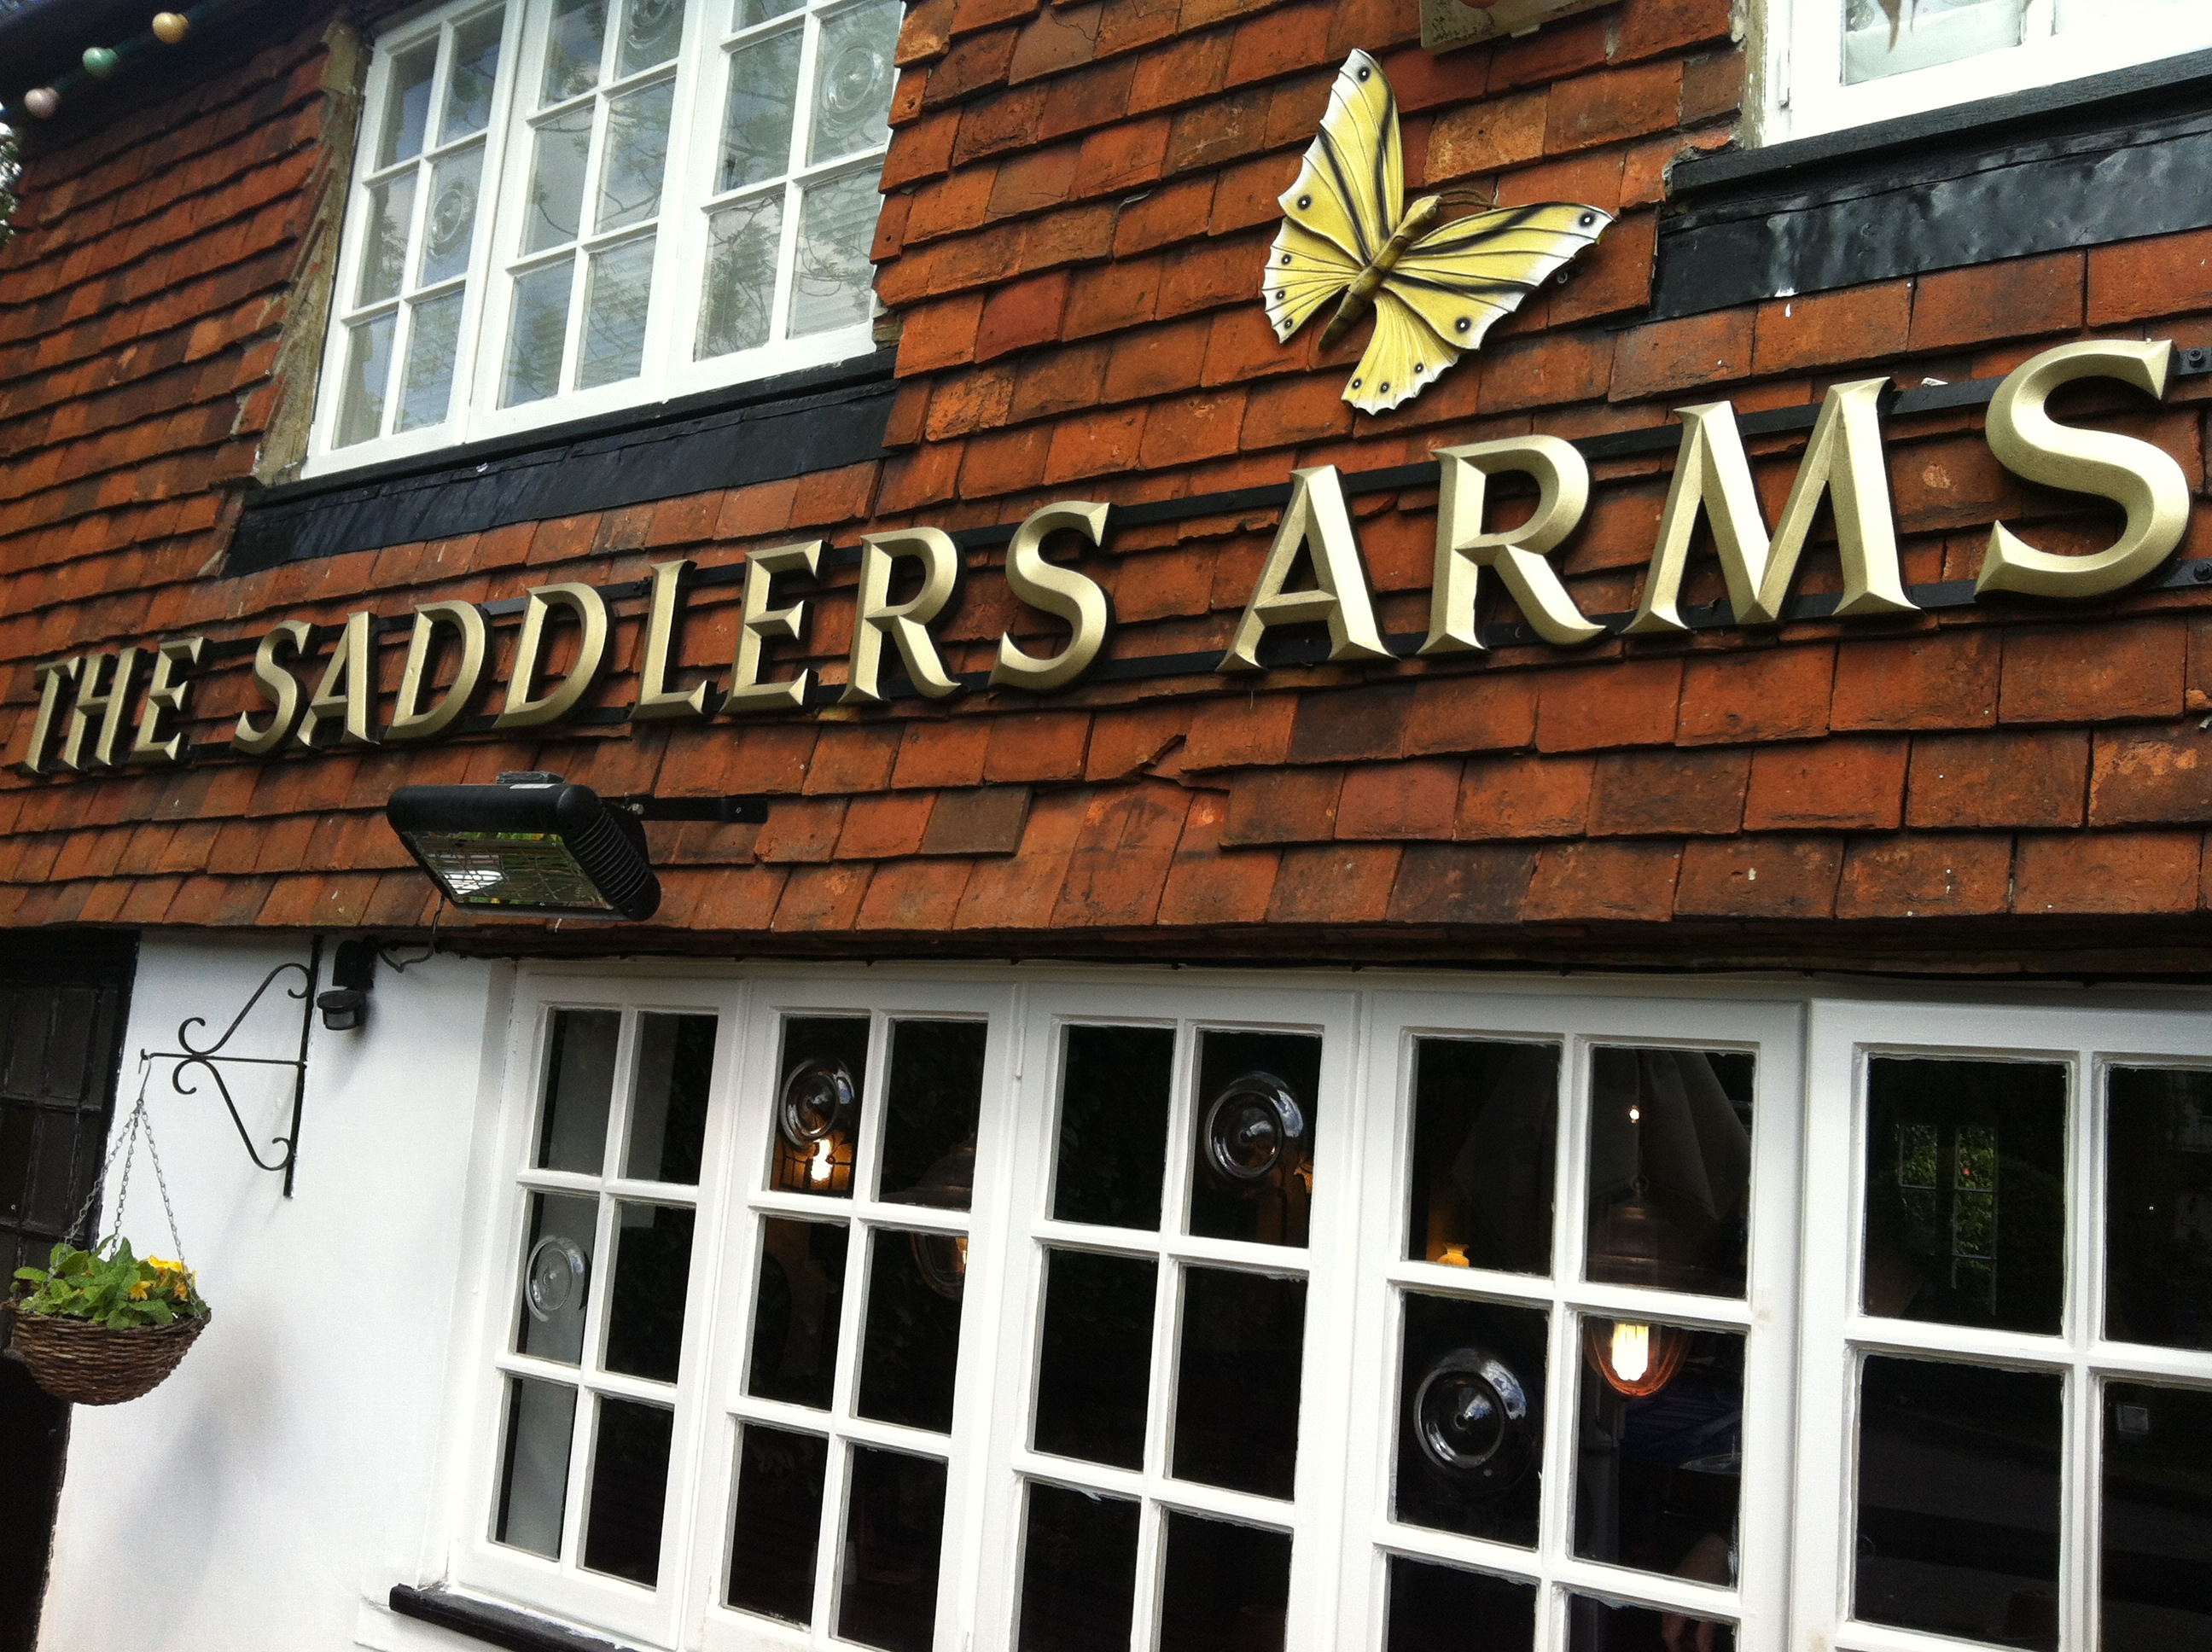 The Saddlers sign